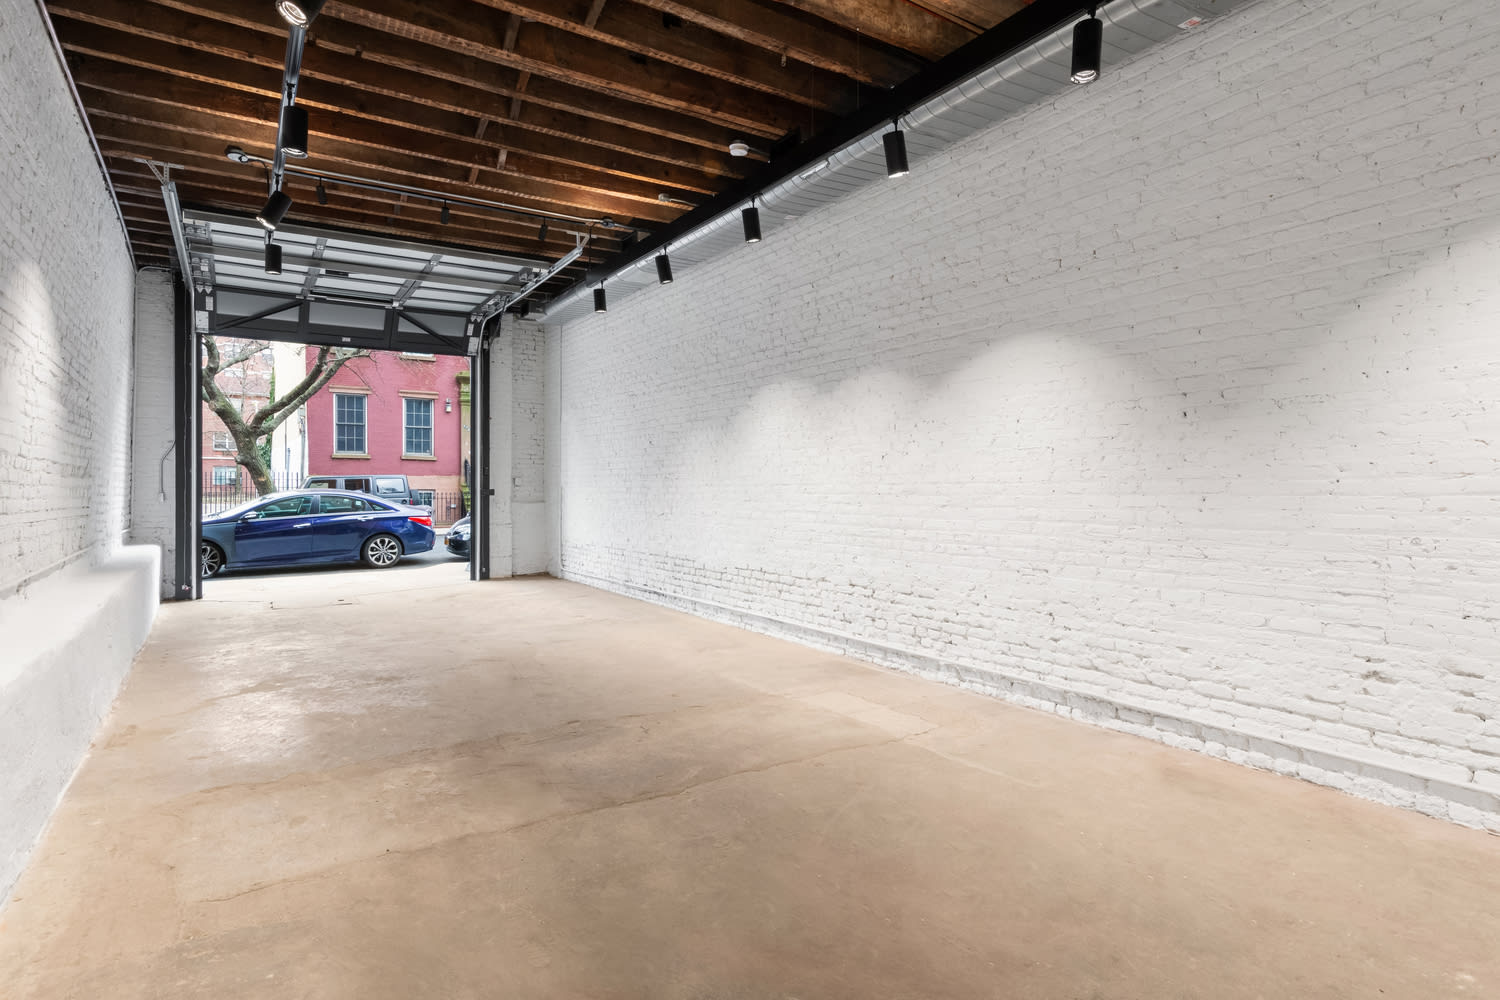 743 East 6th Street, Unit Gallery photo